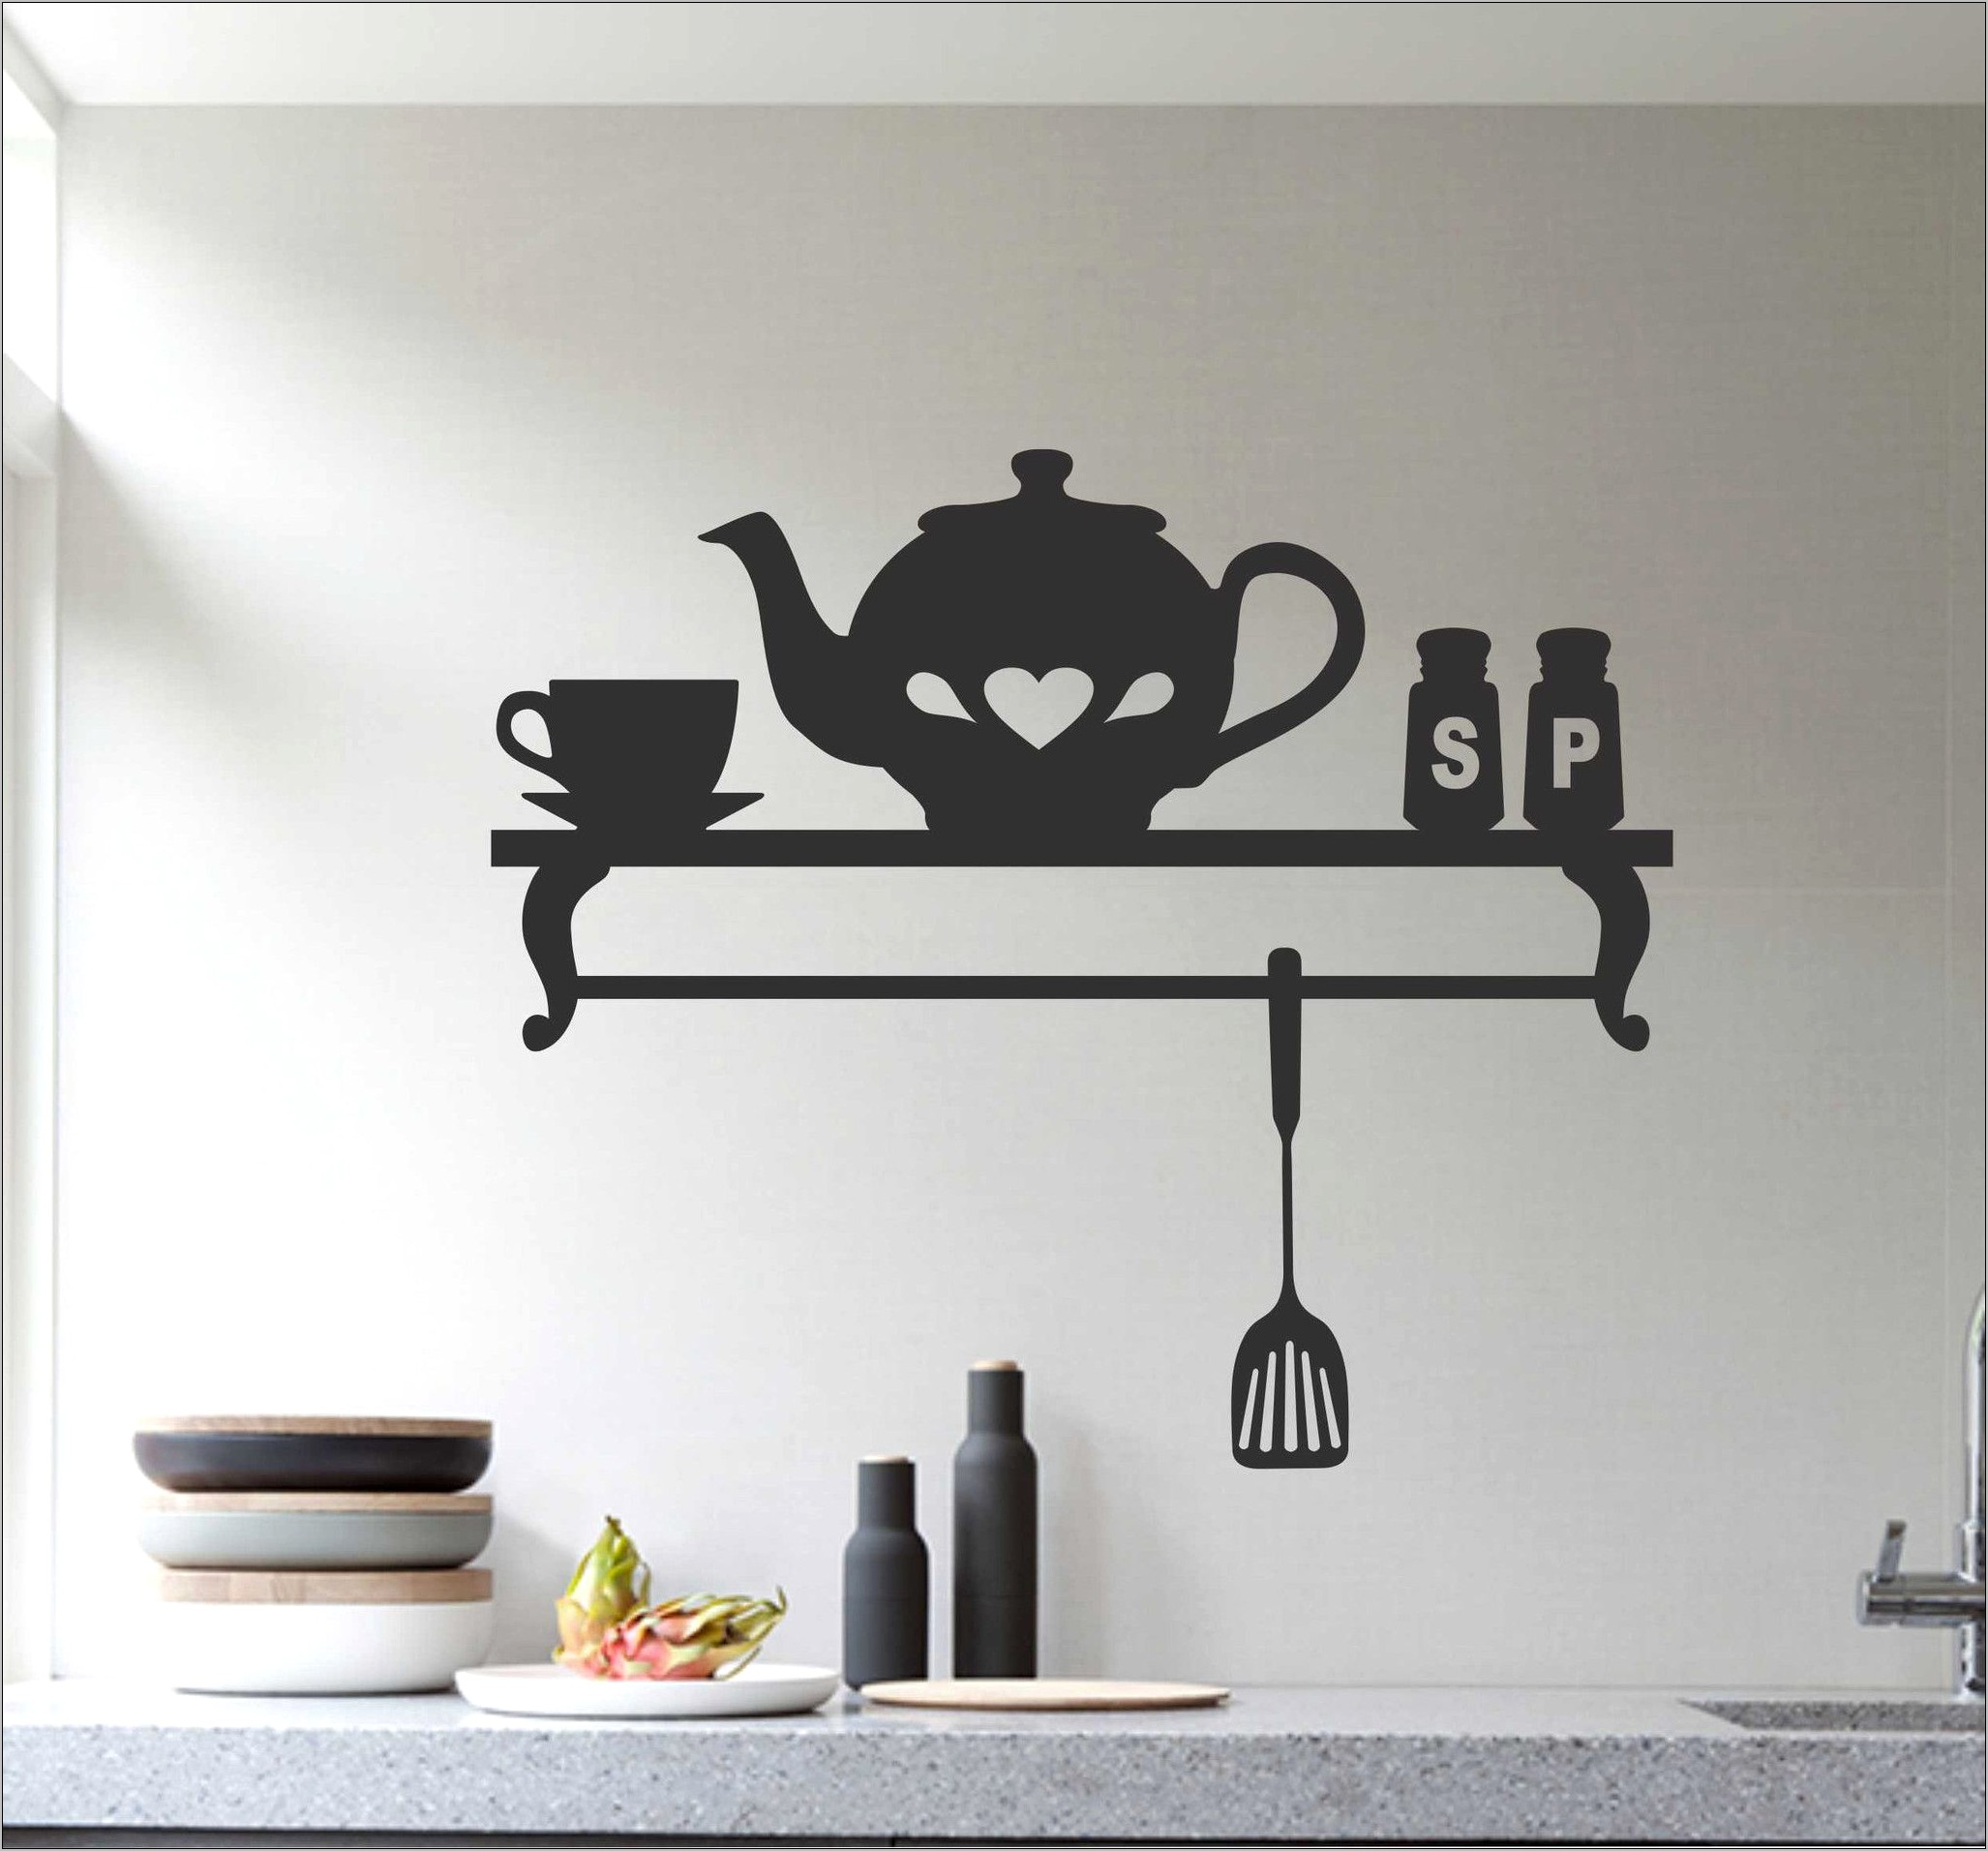 Decorative Wall Decals Kitchen